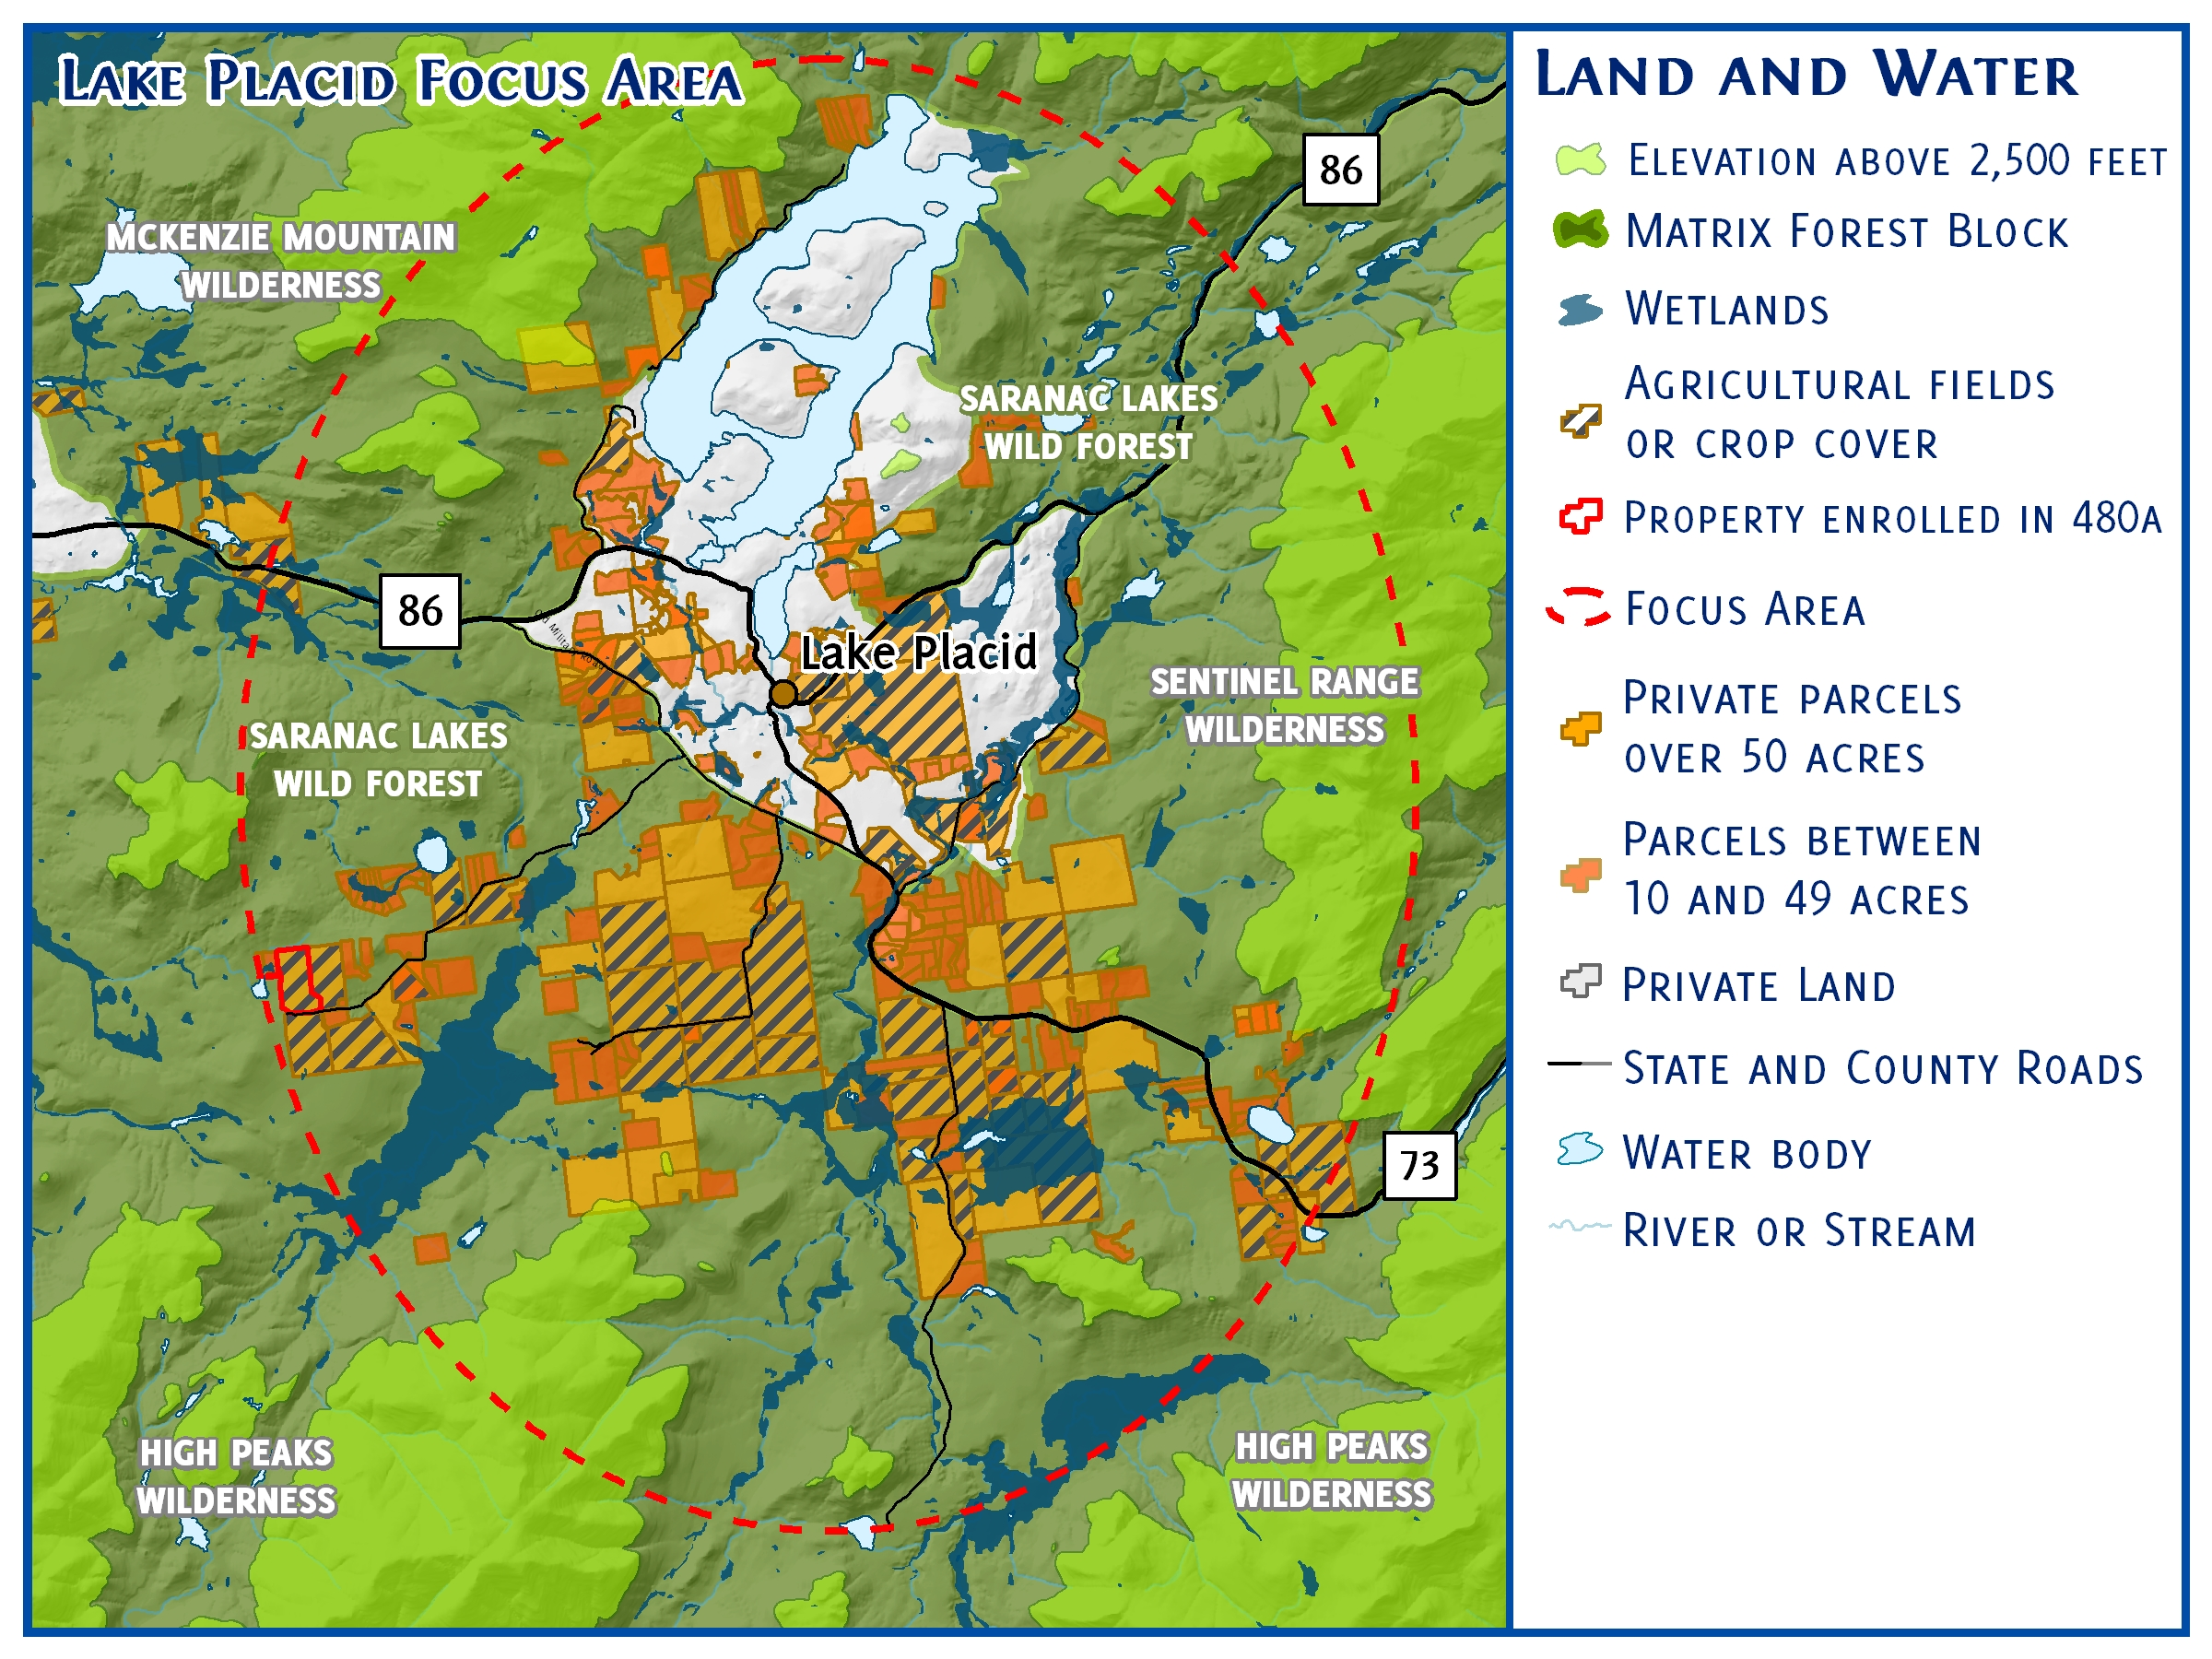 Lake Placid – Lake Placid Land Conservancy